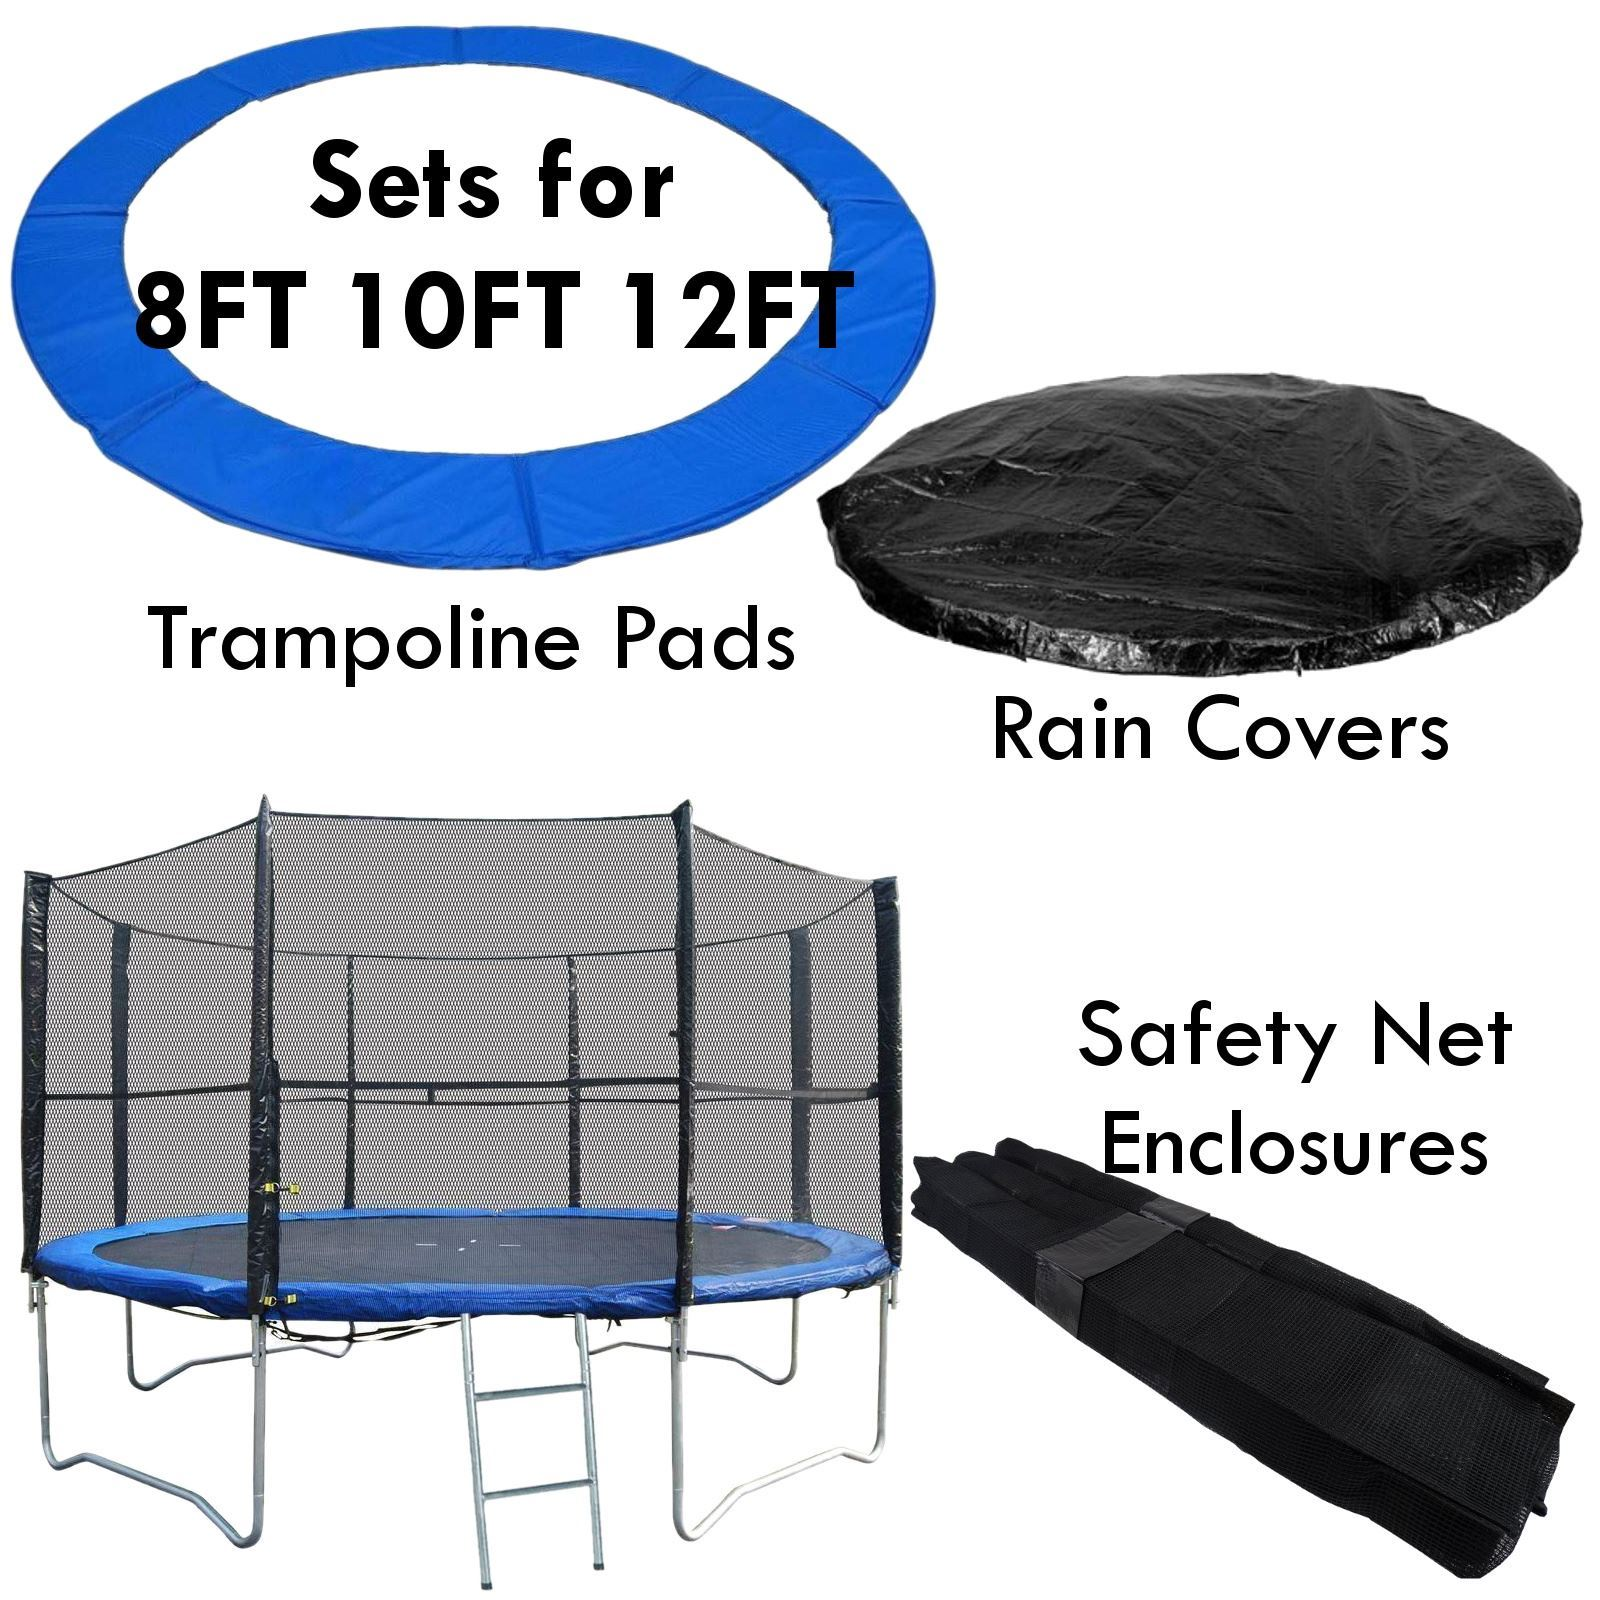 10 12 14 15 Trampoline Replacement Pad Pading Safety Net: Trampoline Safety Enlosure Net And Pad Set Fits 8FT 10FT